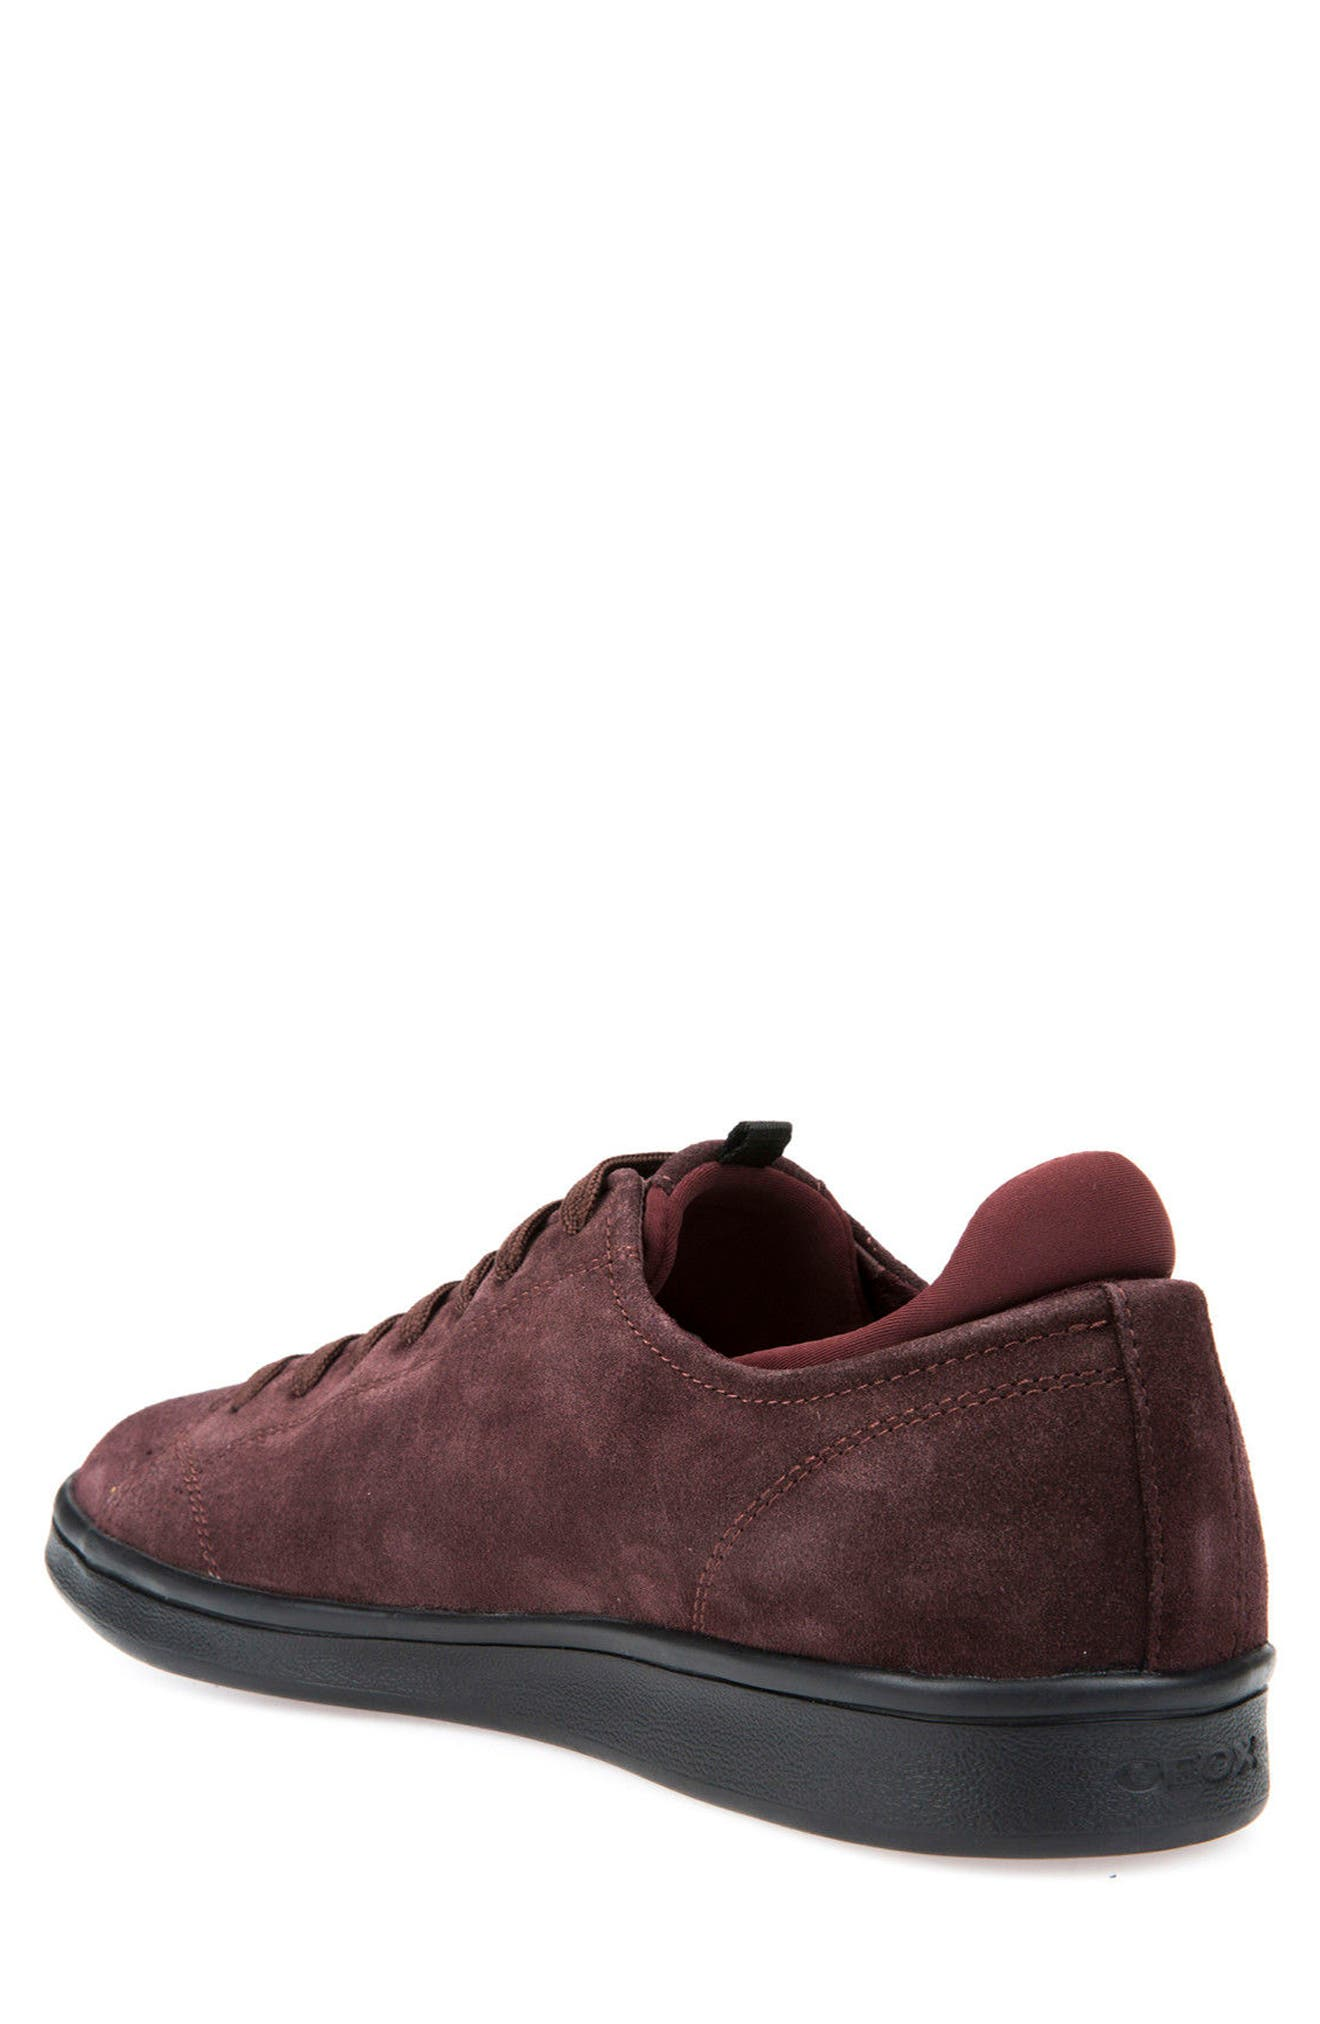 Warrens 8 Low-Top Sneaker,                             Alternate thumbnail 2, color,                             Bordeaux